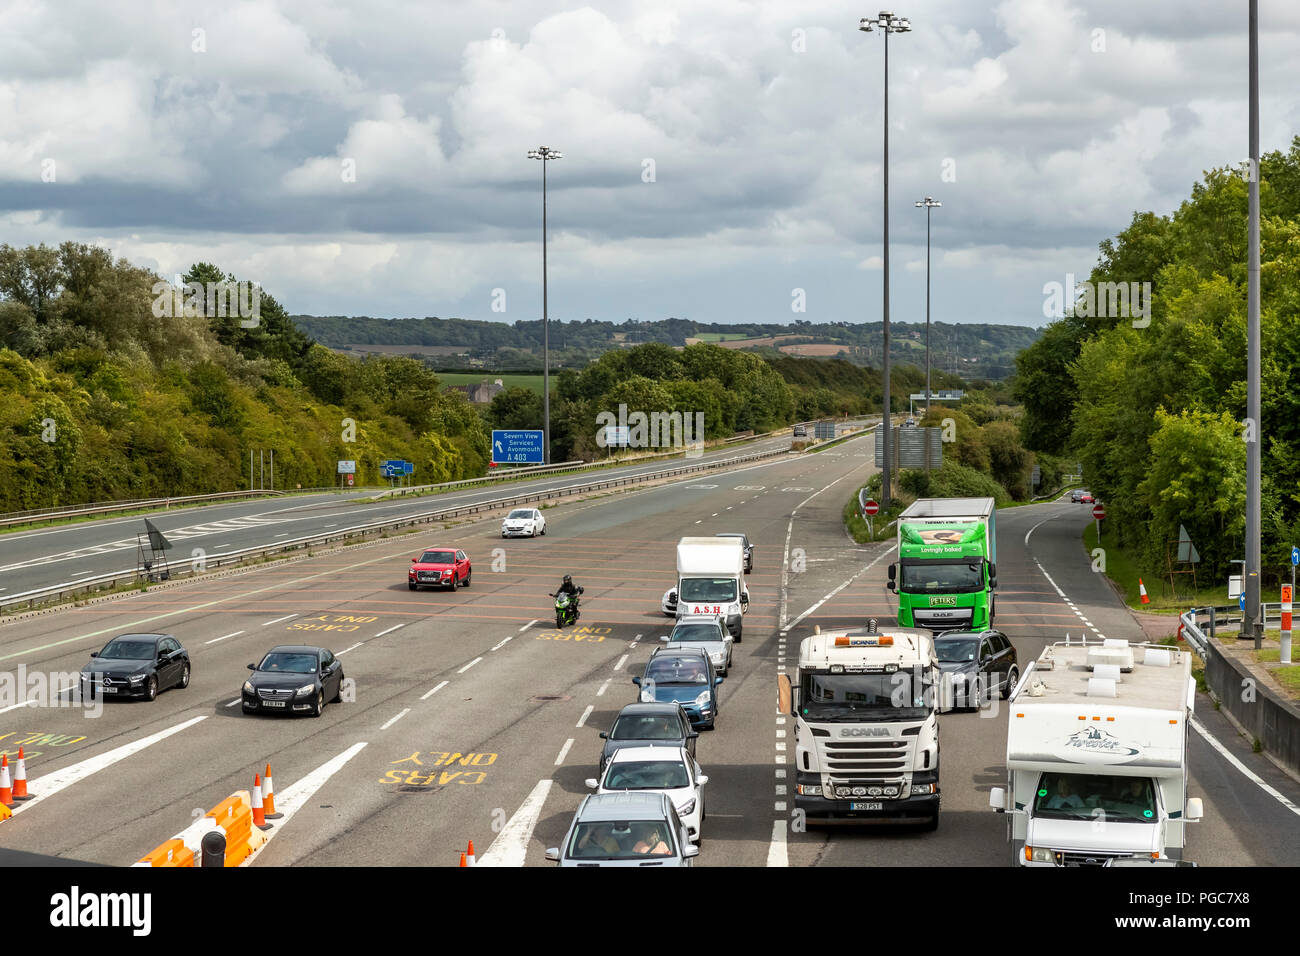 Toll plaza on the M48 Severn Crossing England/Wales border. UK - Stock Image